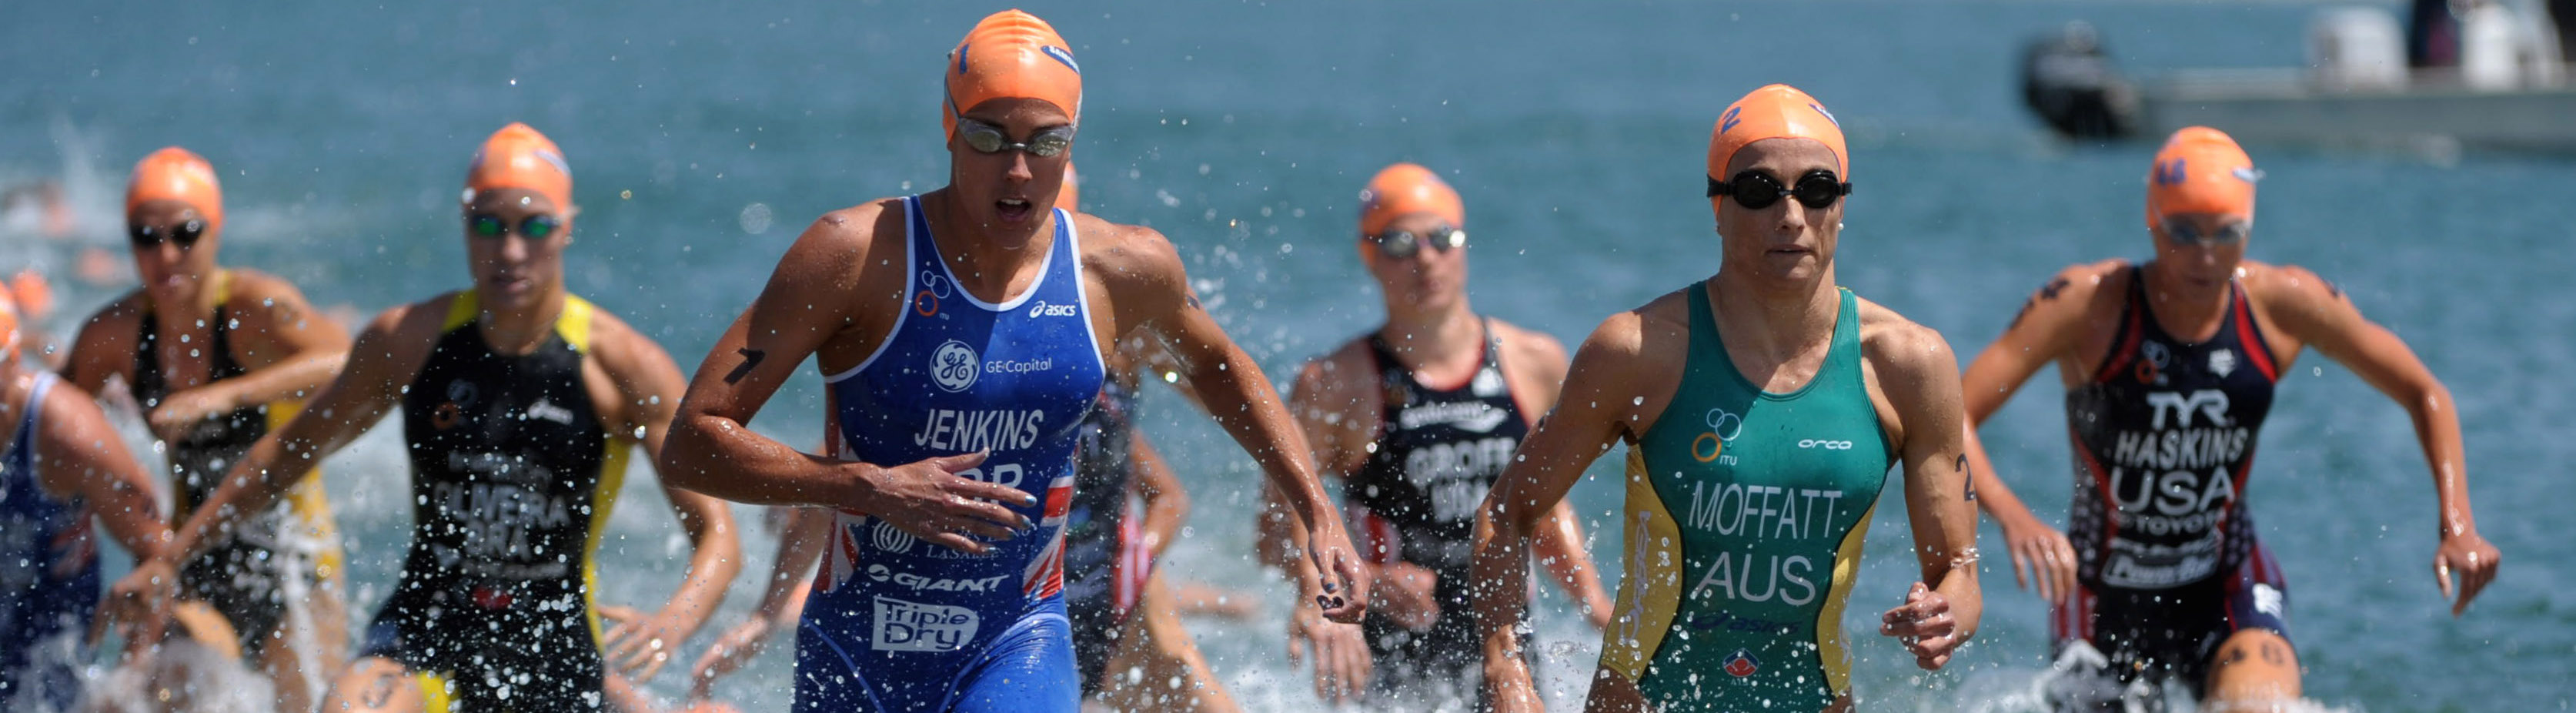 Triathlon: ITU World Championship Series San Diego